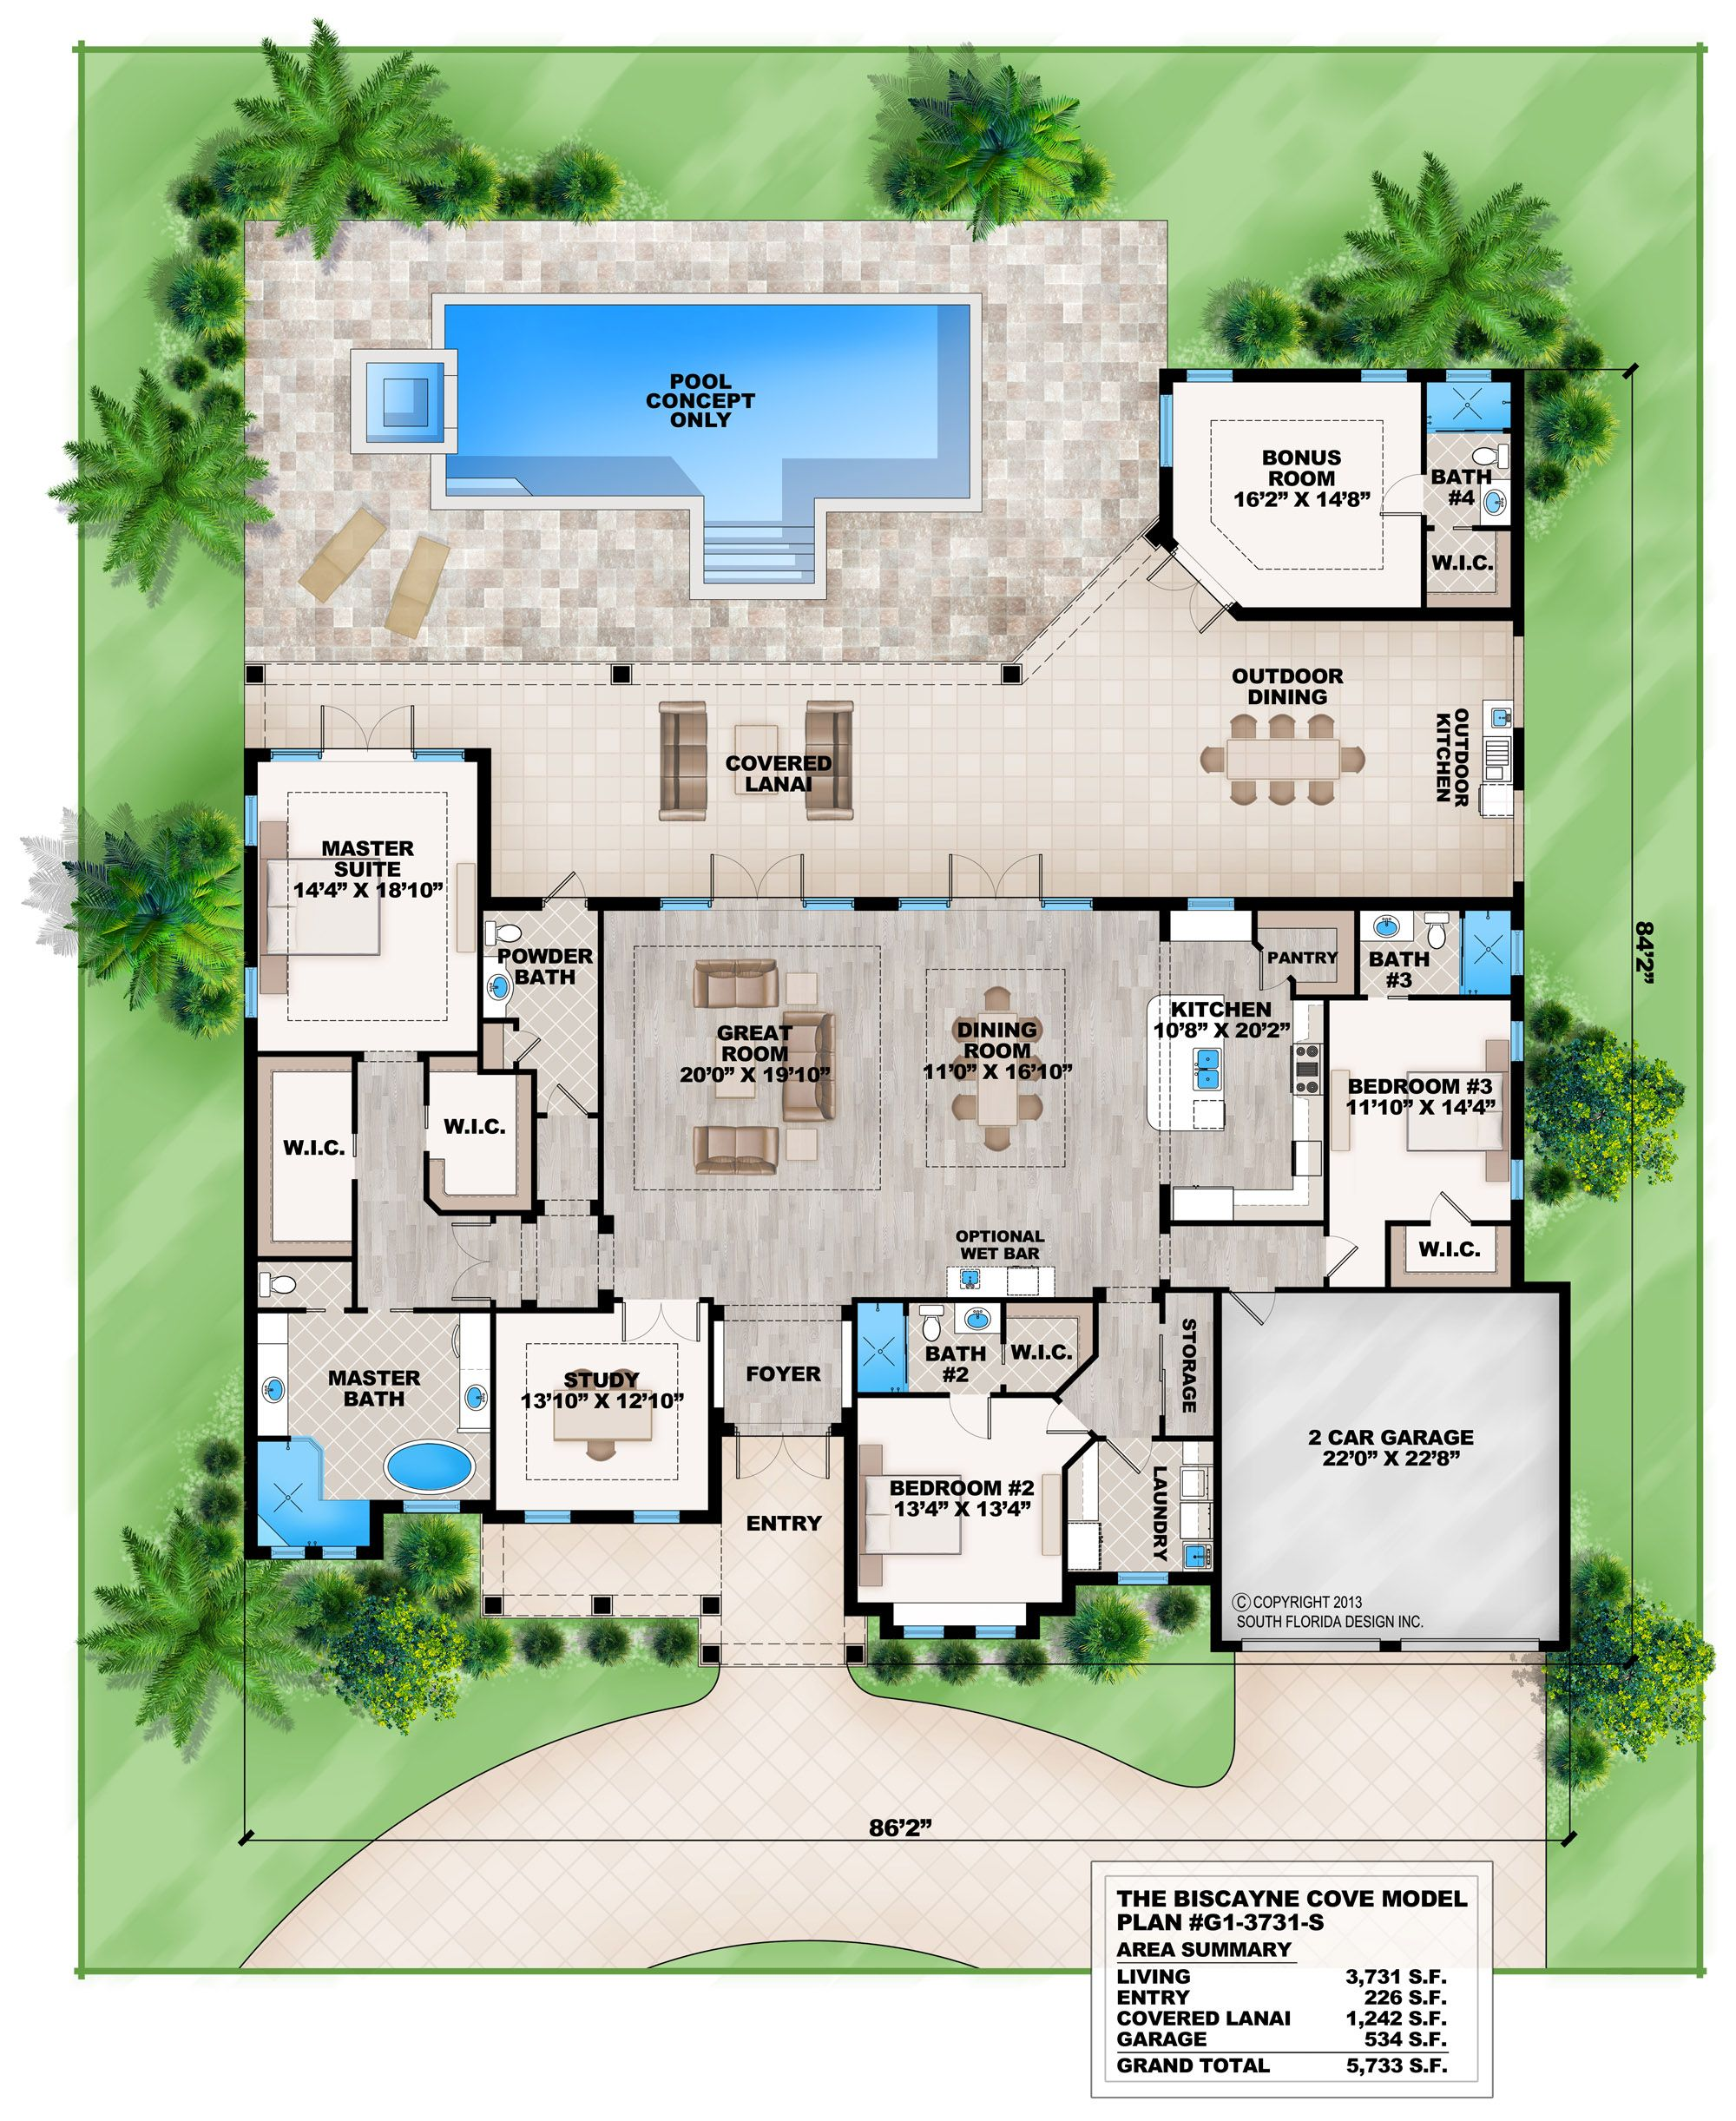 Luxury House Plans With Pools: This 4 Bedroom Coastal Contemporary House Plan Features A